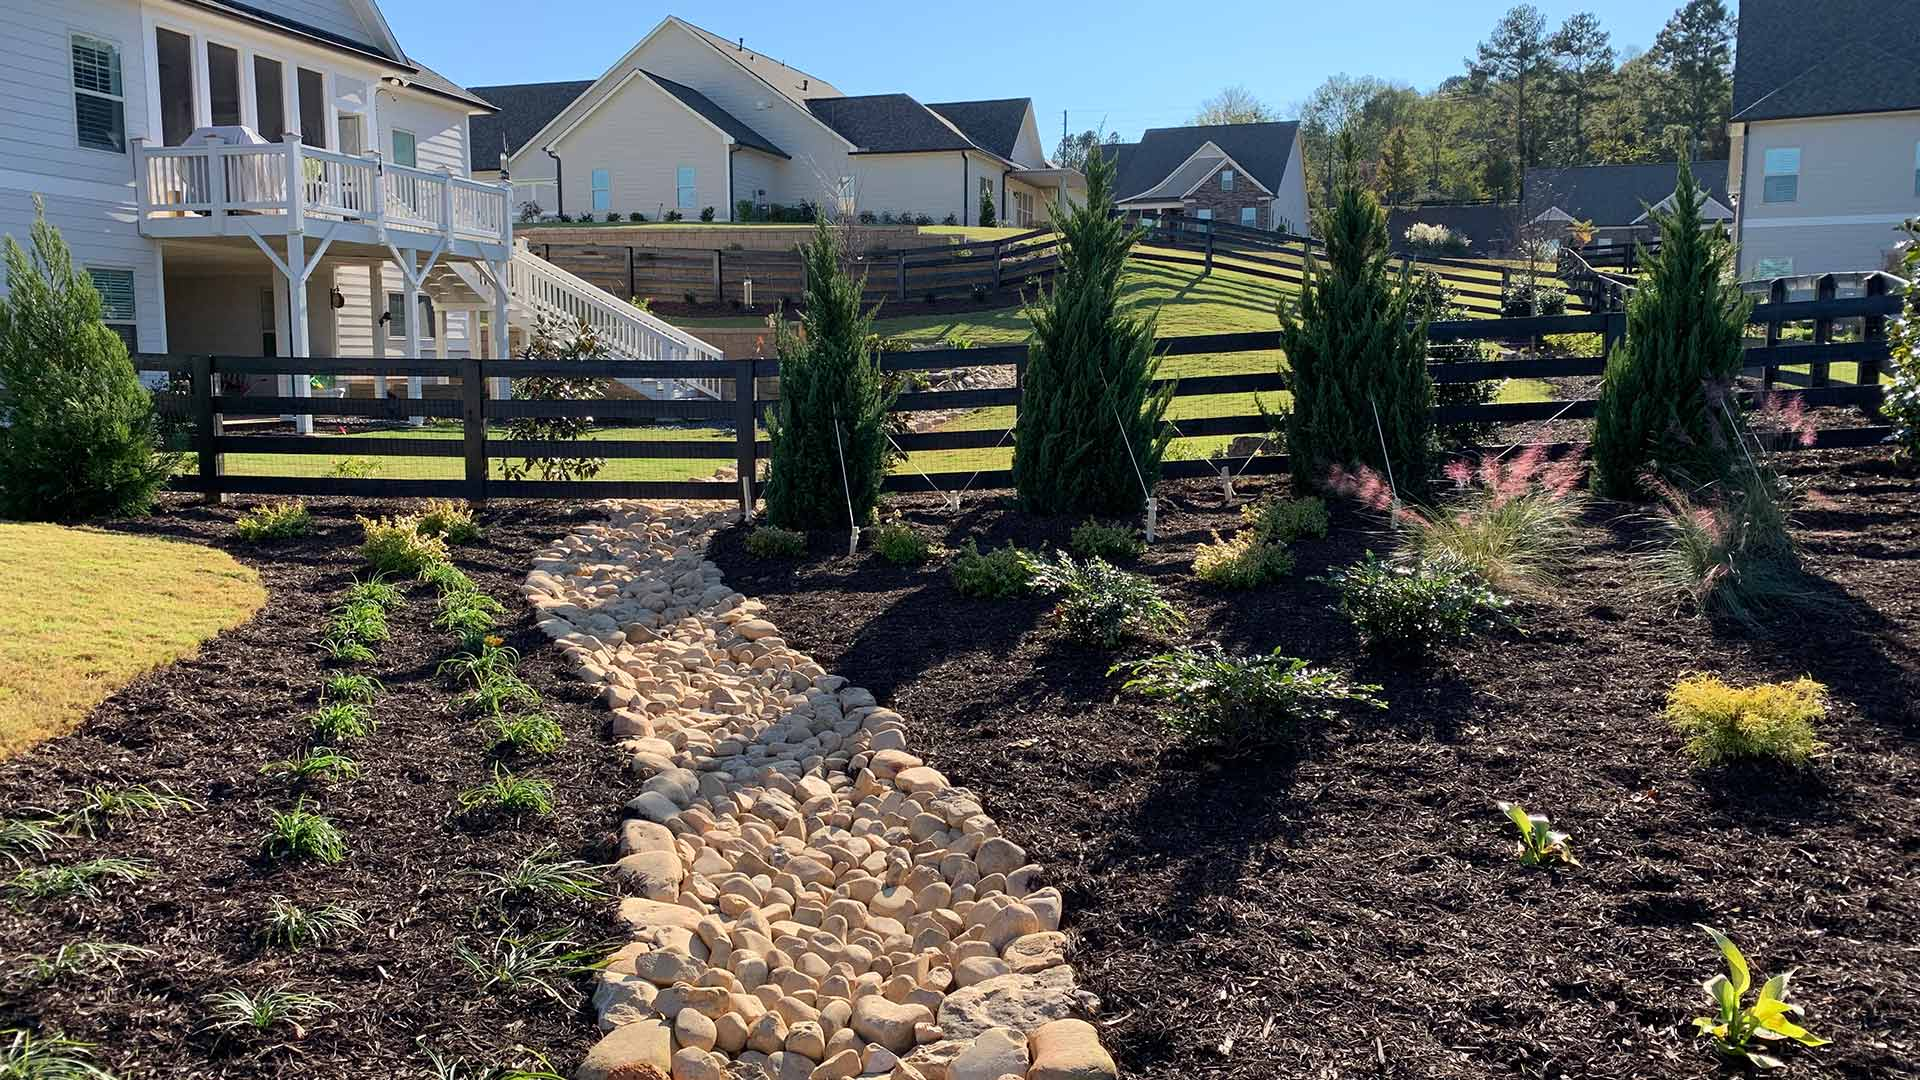 Custom Landscape Design with Dry Creek Bed in Marietta, GA